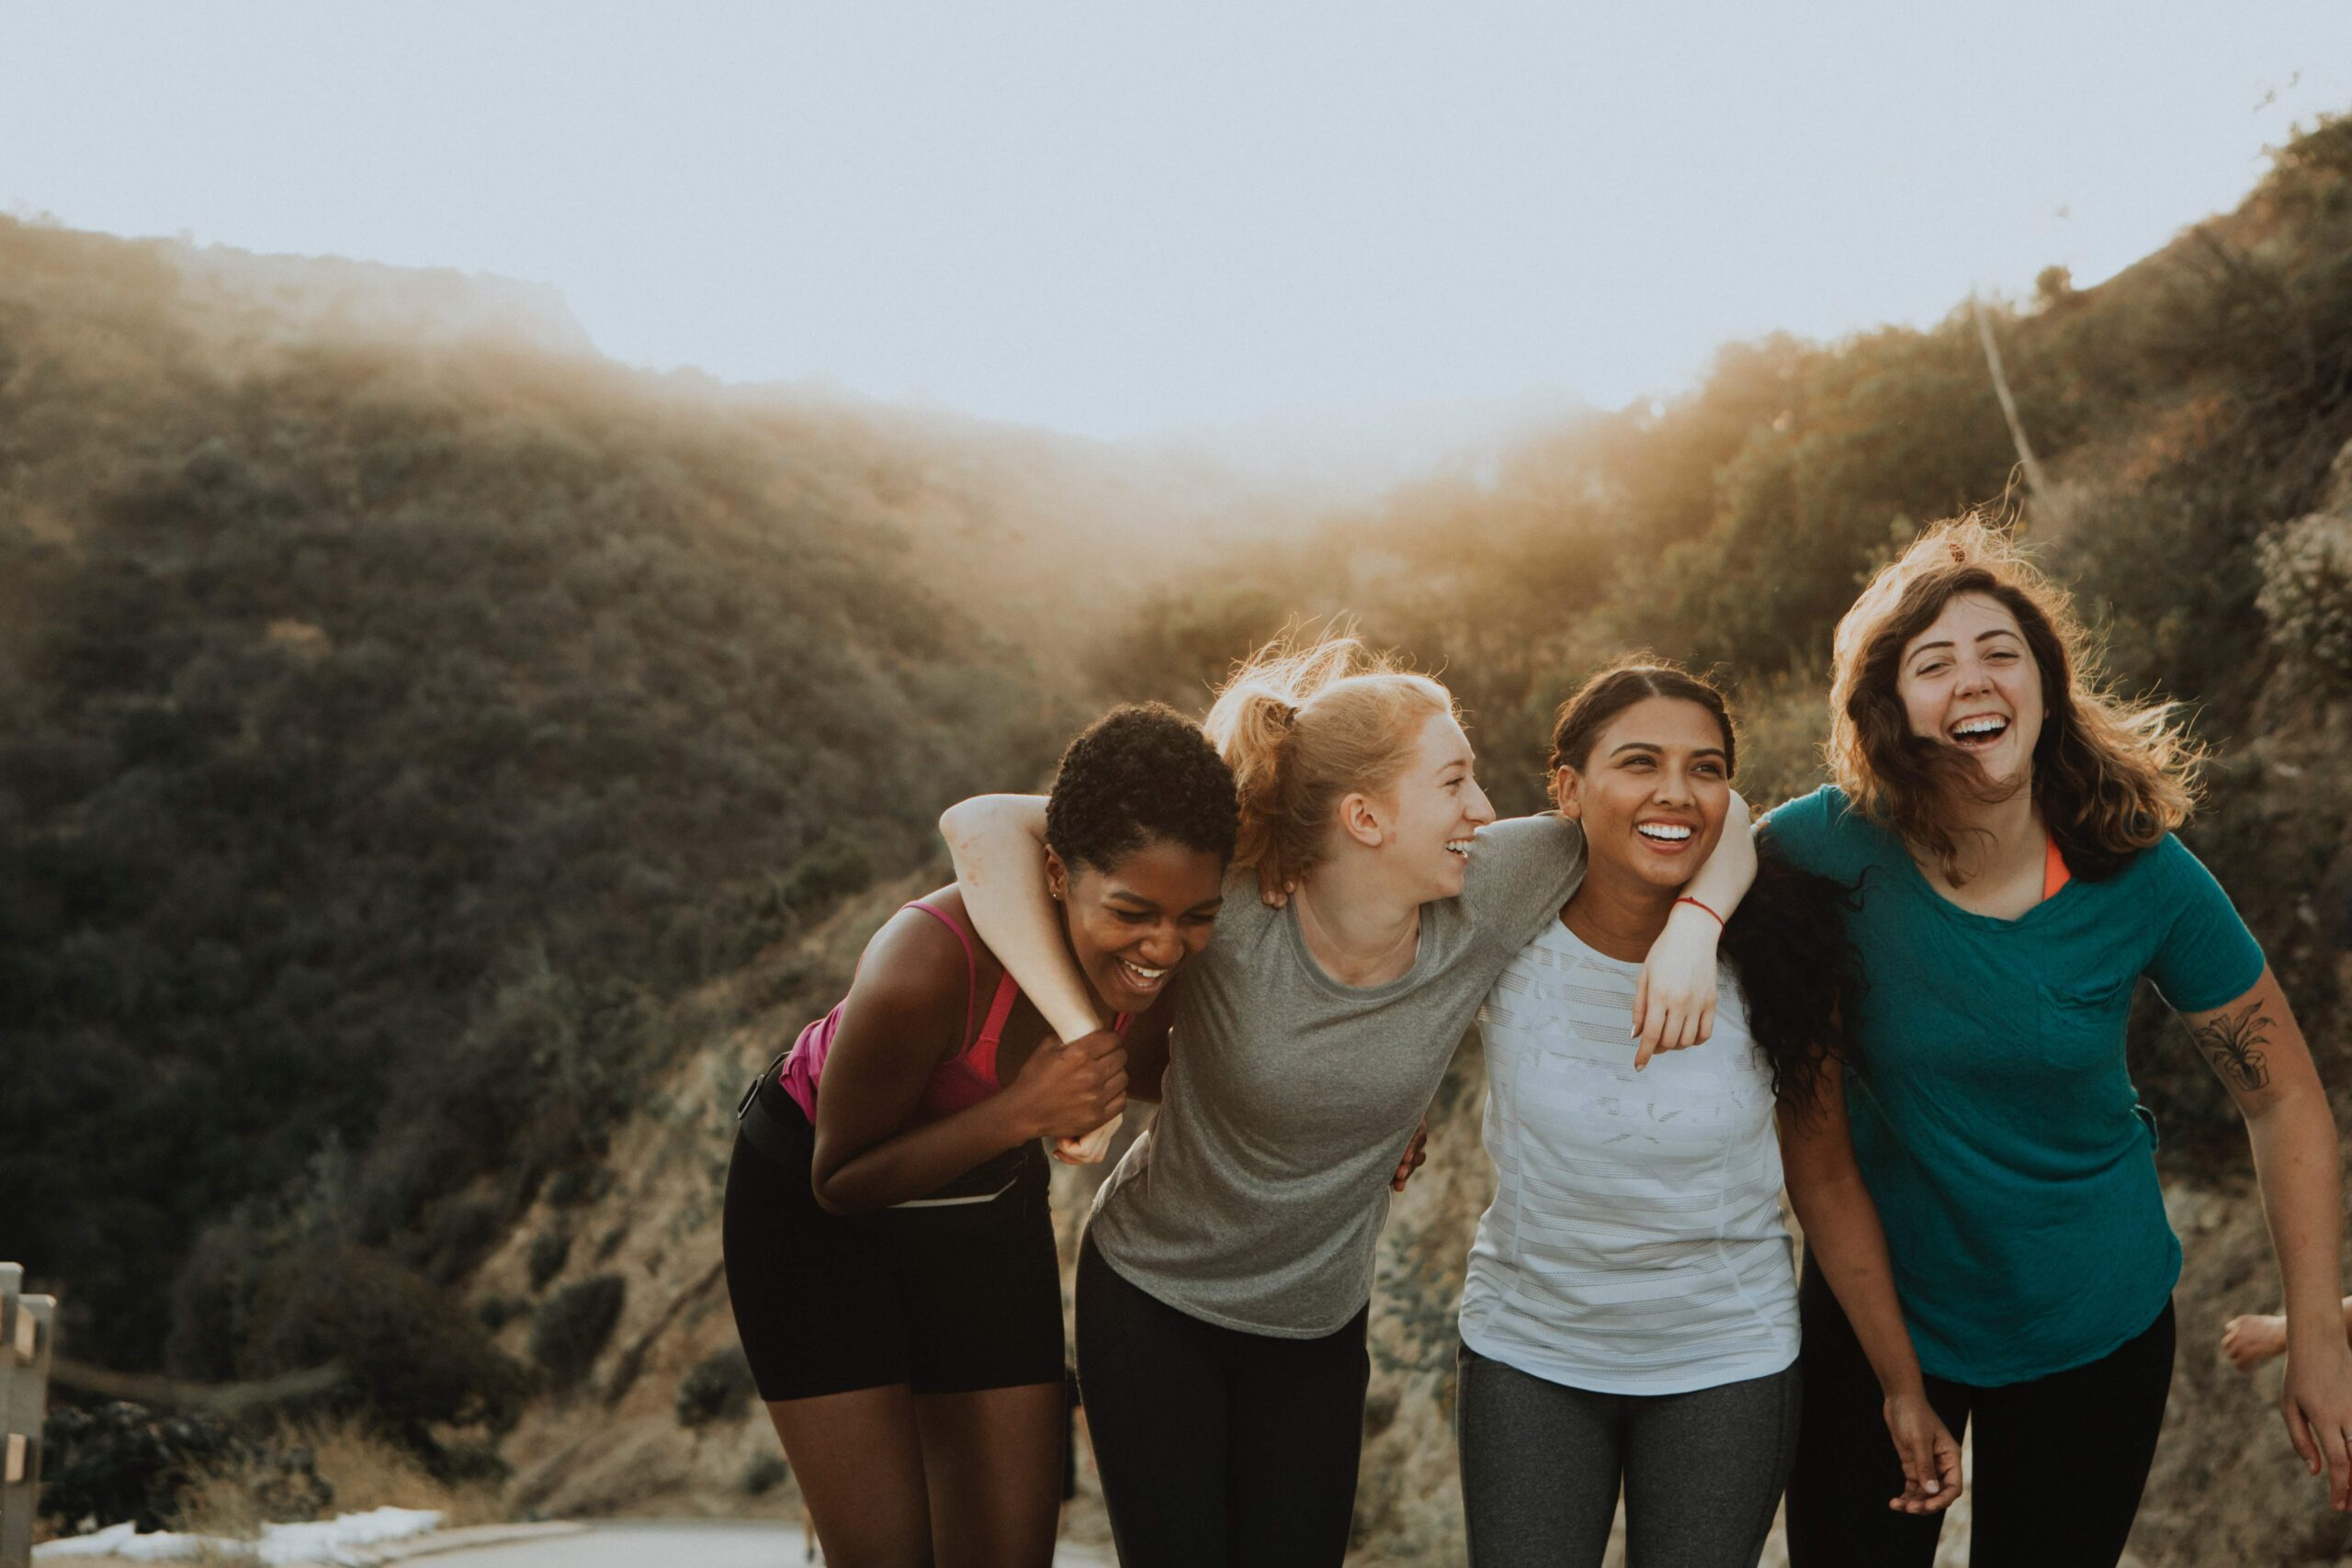 women-smiling-in-nature